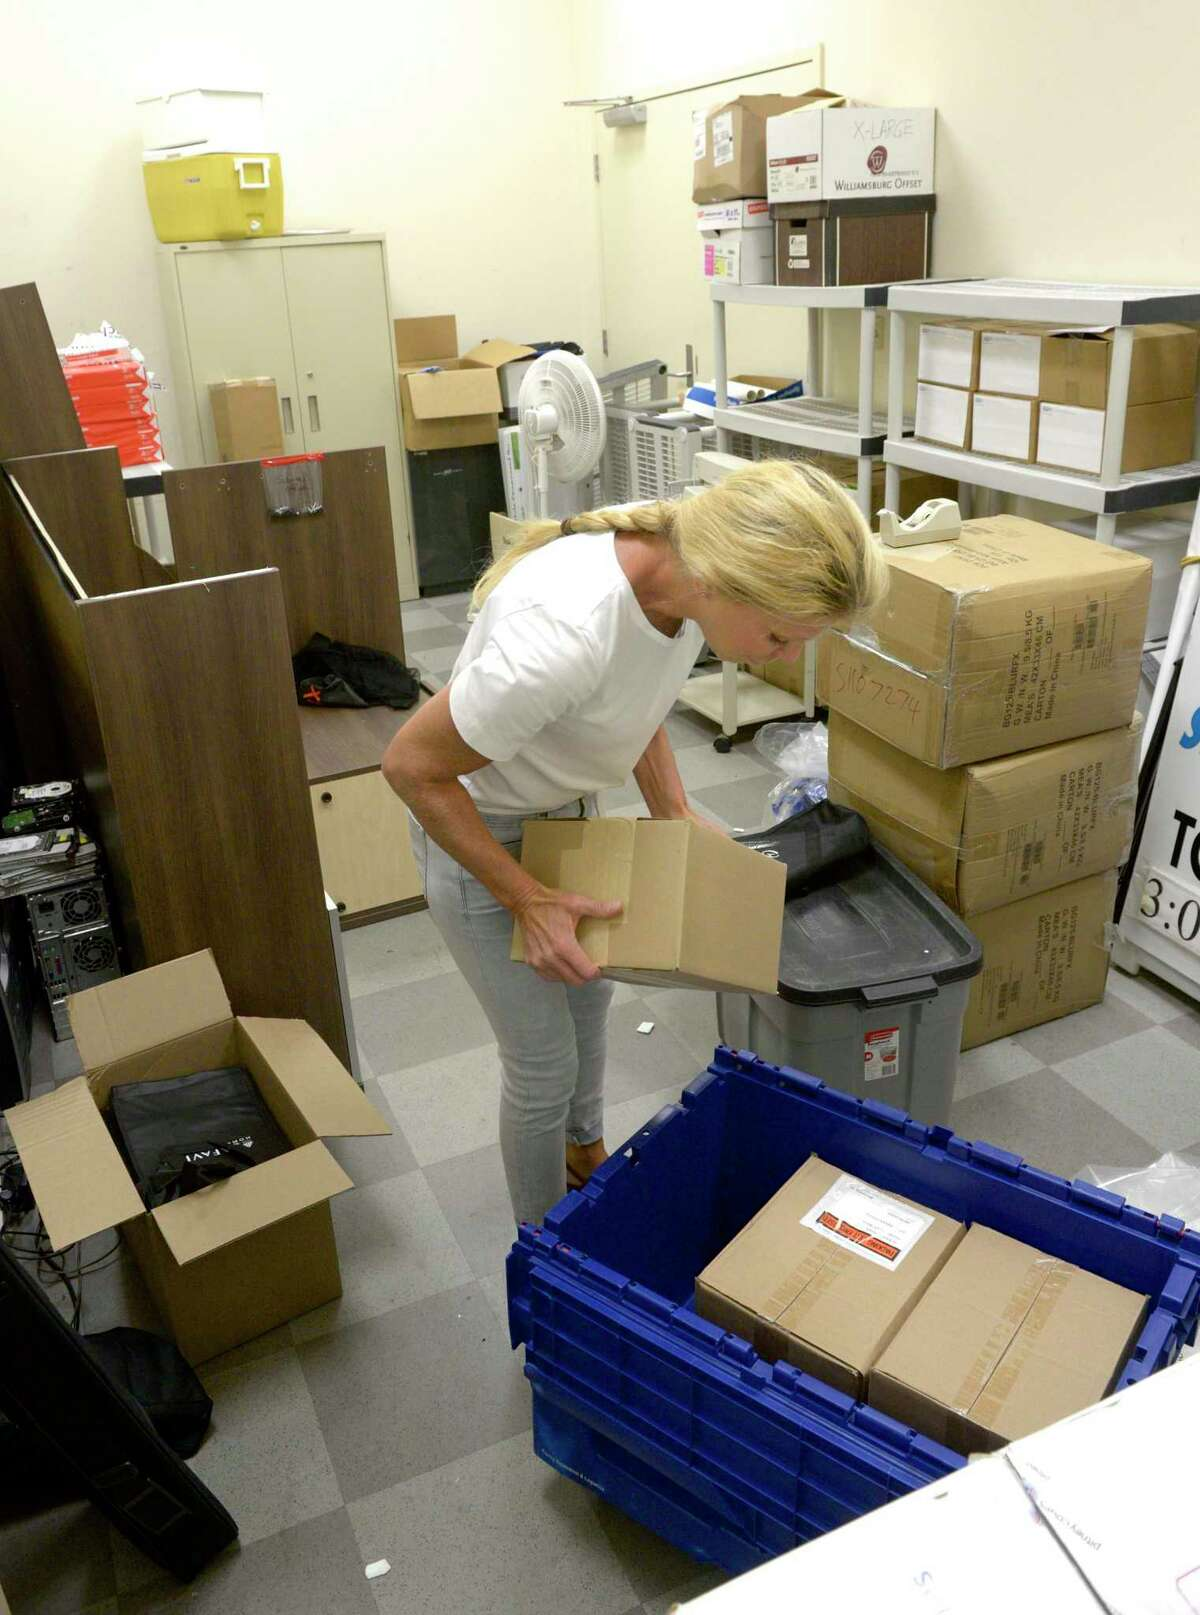 JoAnn Cueva packs up the storage room at the Greater Danbury Chamber of Commerce for their move to new office space at 1 Ives Street. Cueva is Director of Events and Business Development. Thursday, September 26, 2019, in Danbury, Conn.